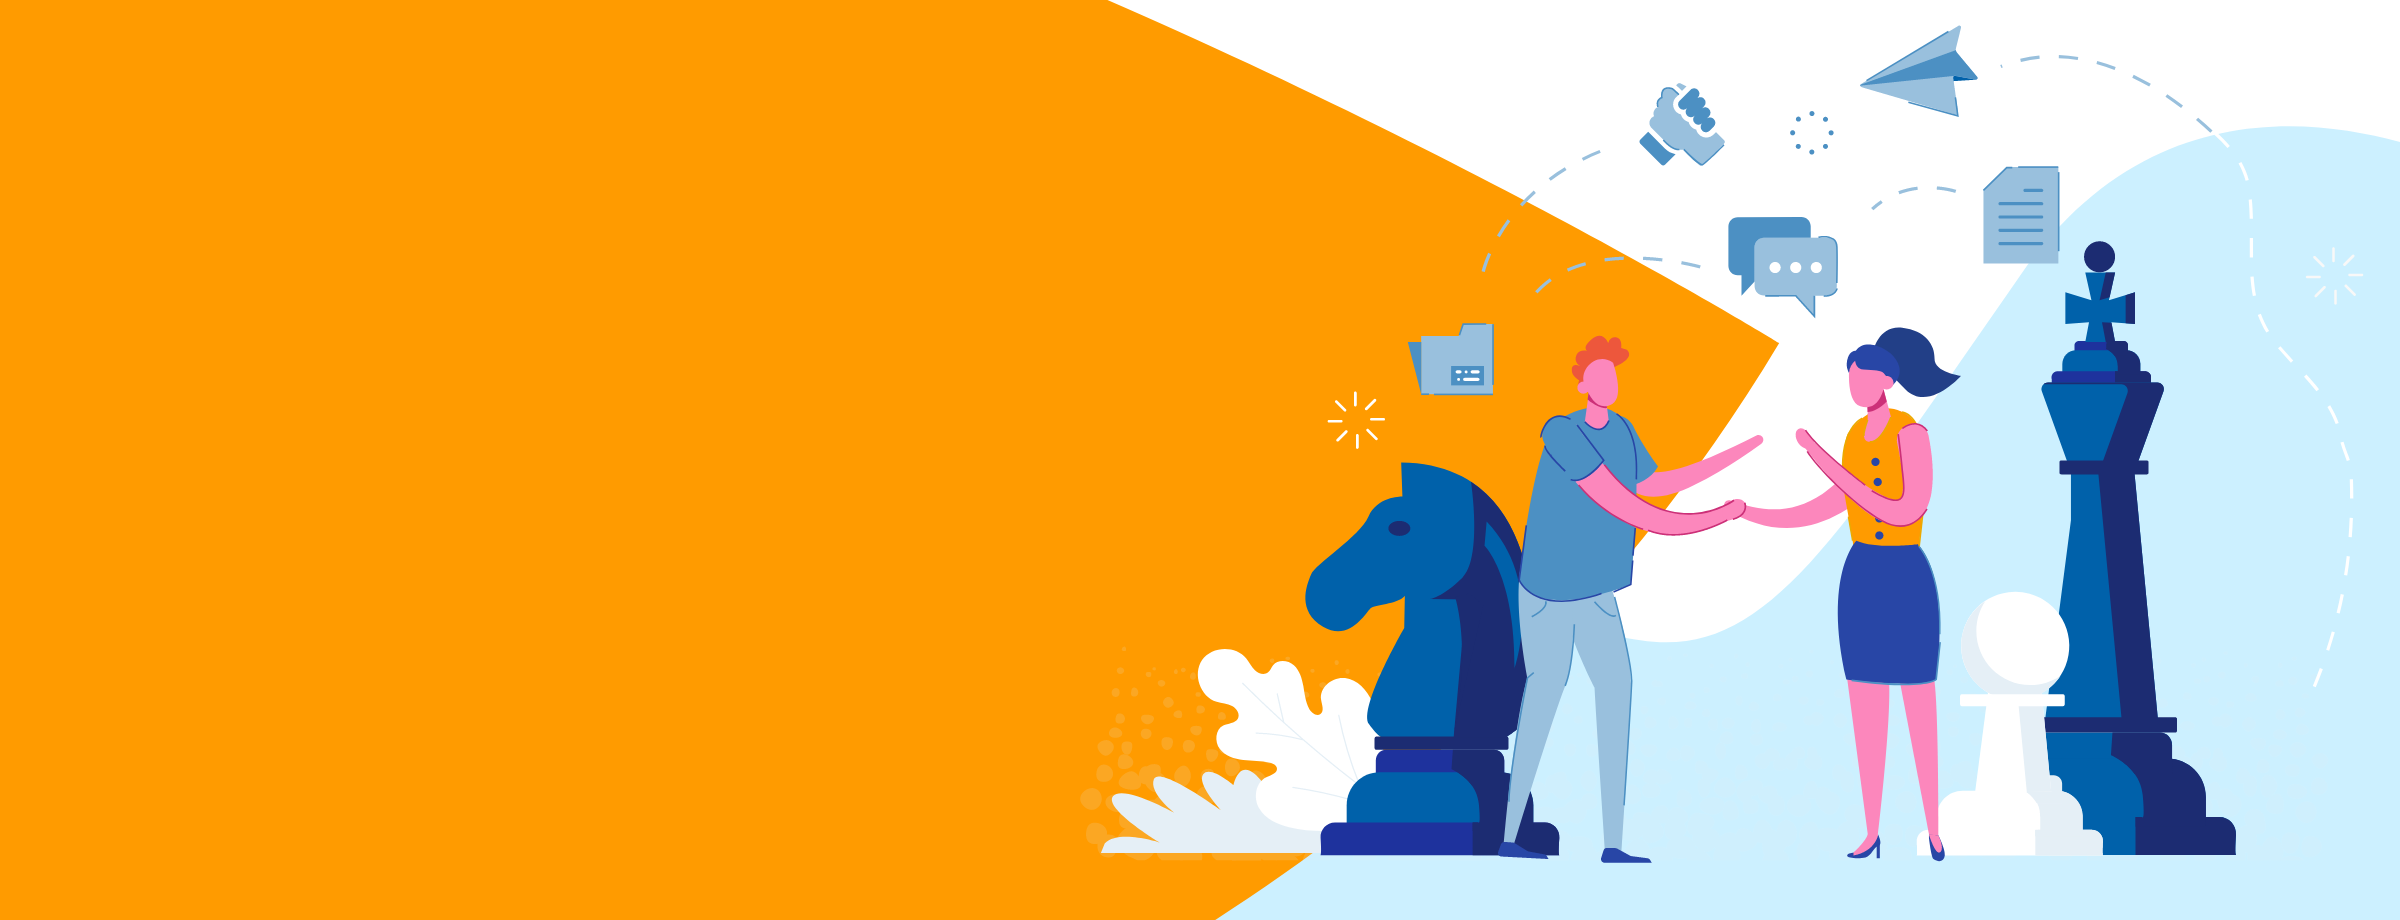 Speed up business transformation with Microsoft 365